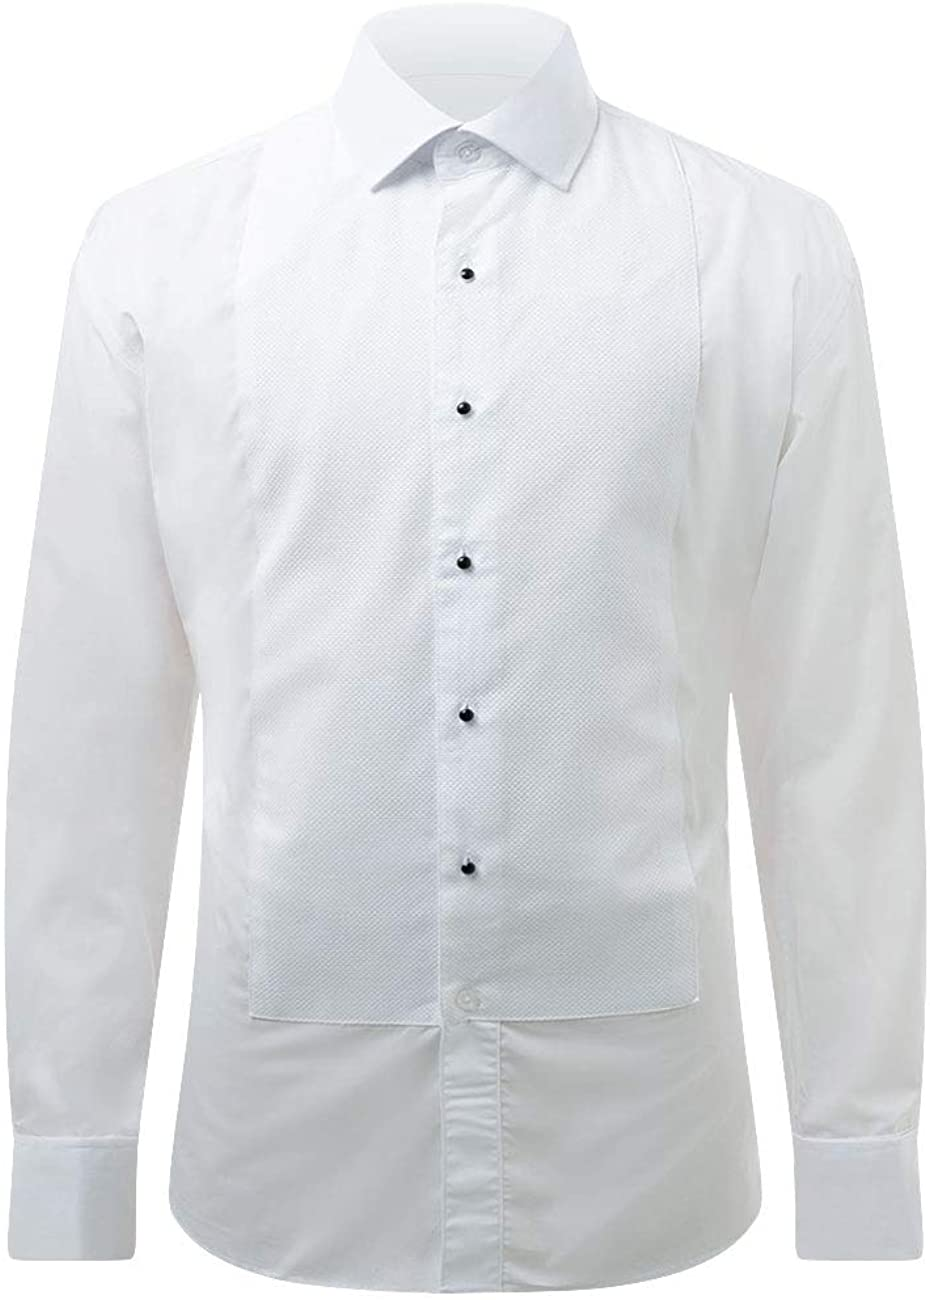 1920s Men's Fashion UK | Peaky Blinders Clothing Dobell Mens White Marcella Evening Dress Shirt Regular Fit Standard Collar Stud Button Front £39.99 AT vintagedancer.com